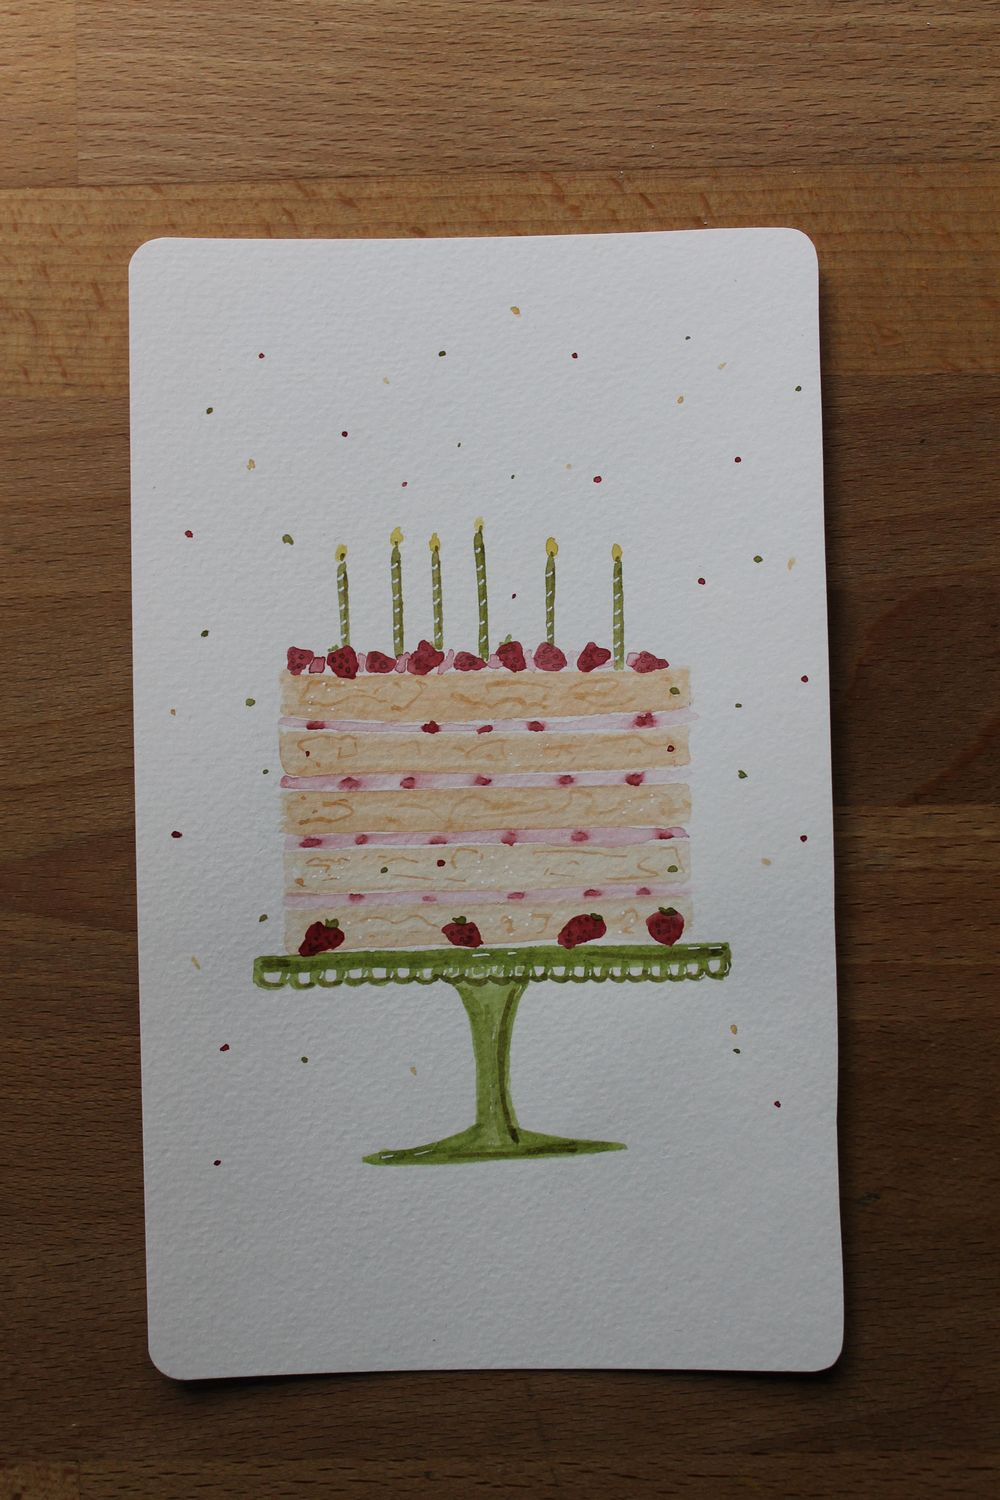 Yummy Cakes - image 4 - student project